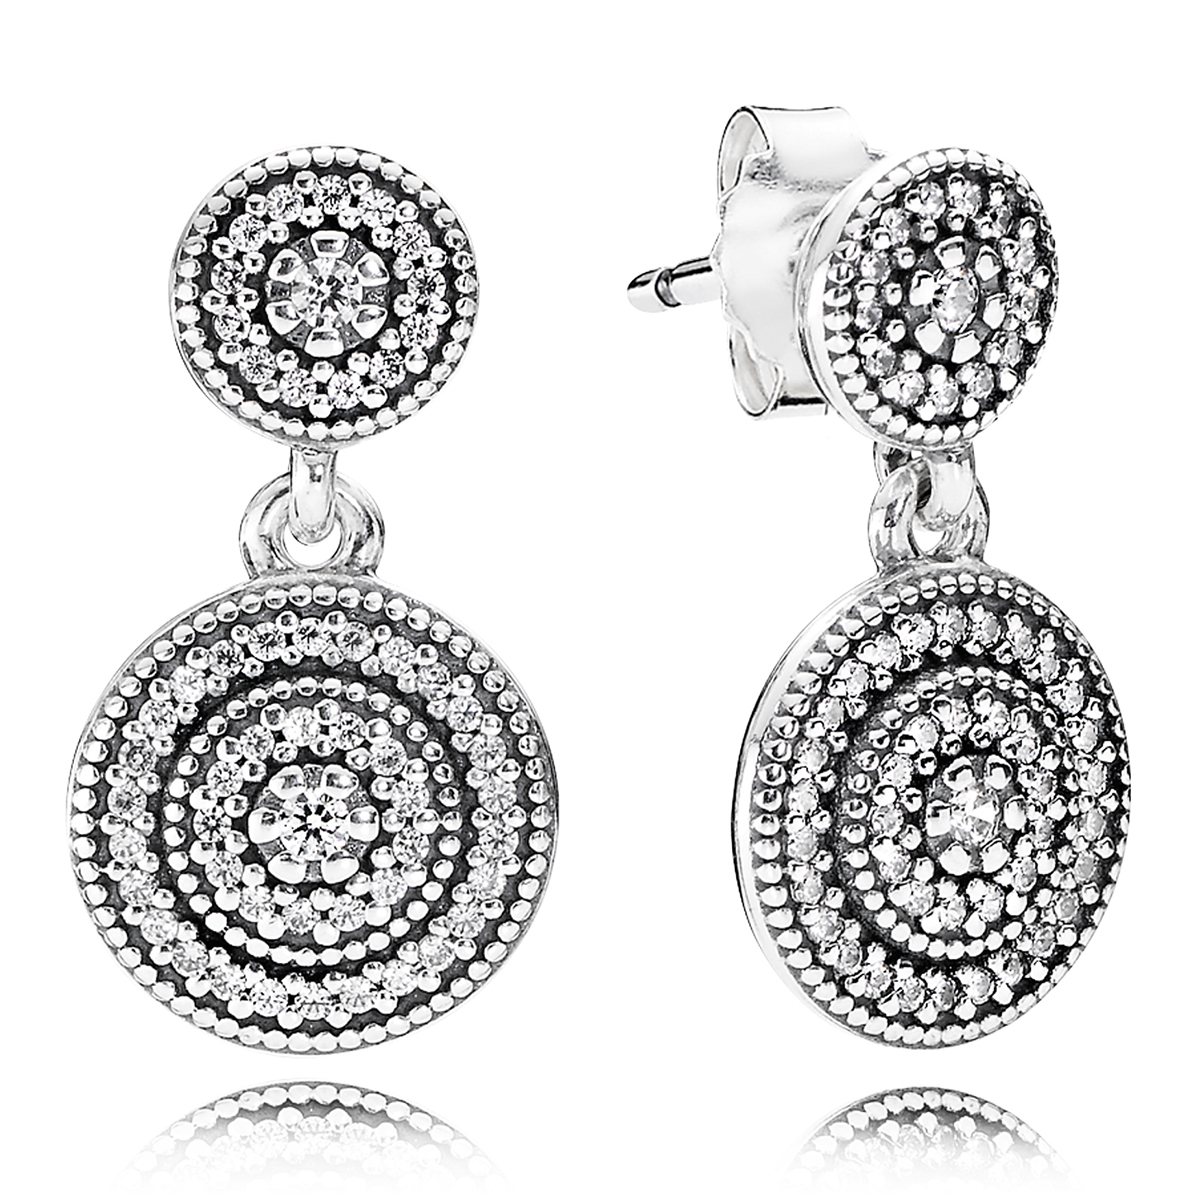 Pandora Drop Earrings: Pandora Drop Earrings ,pandora Store Finder